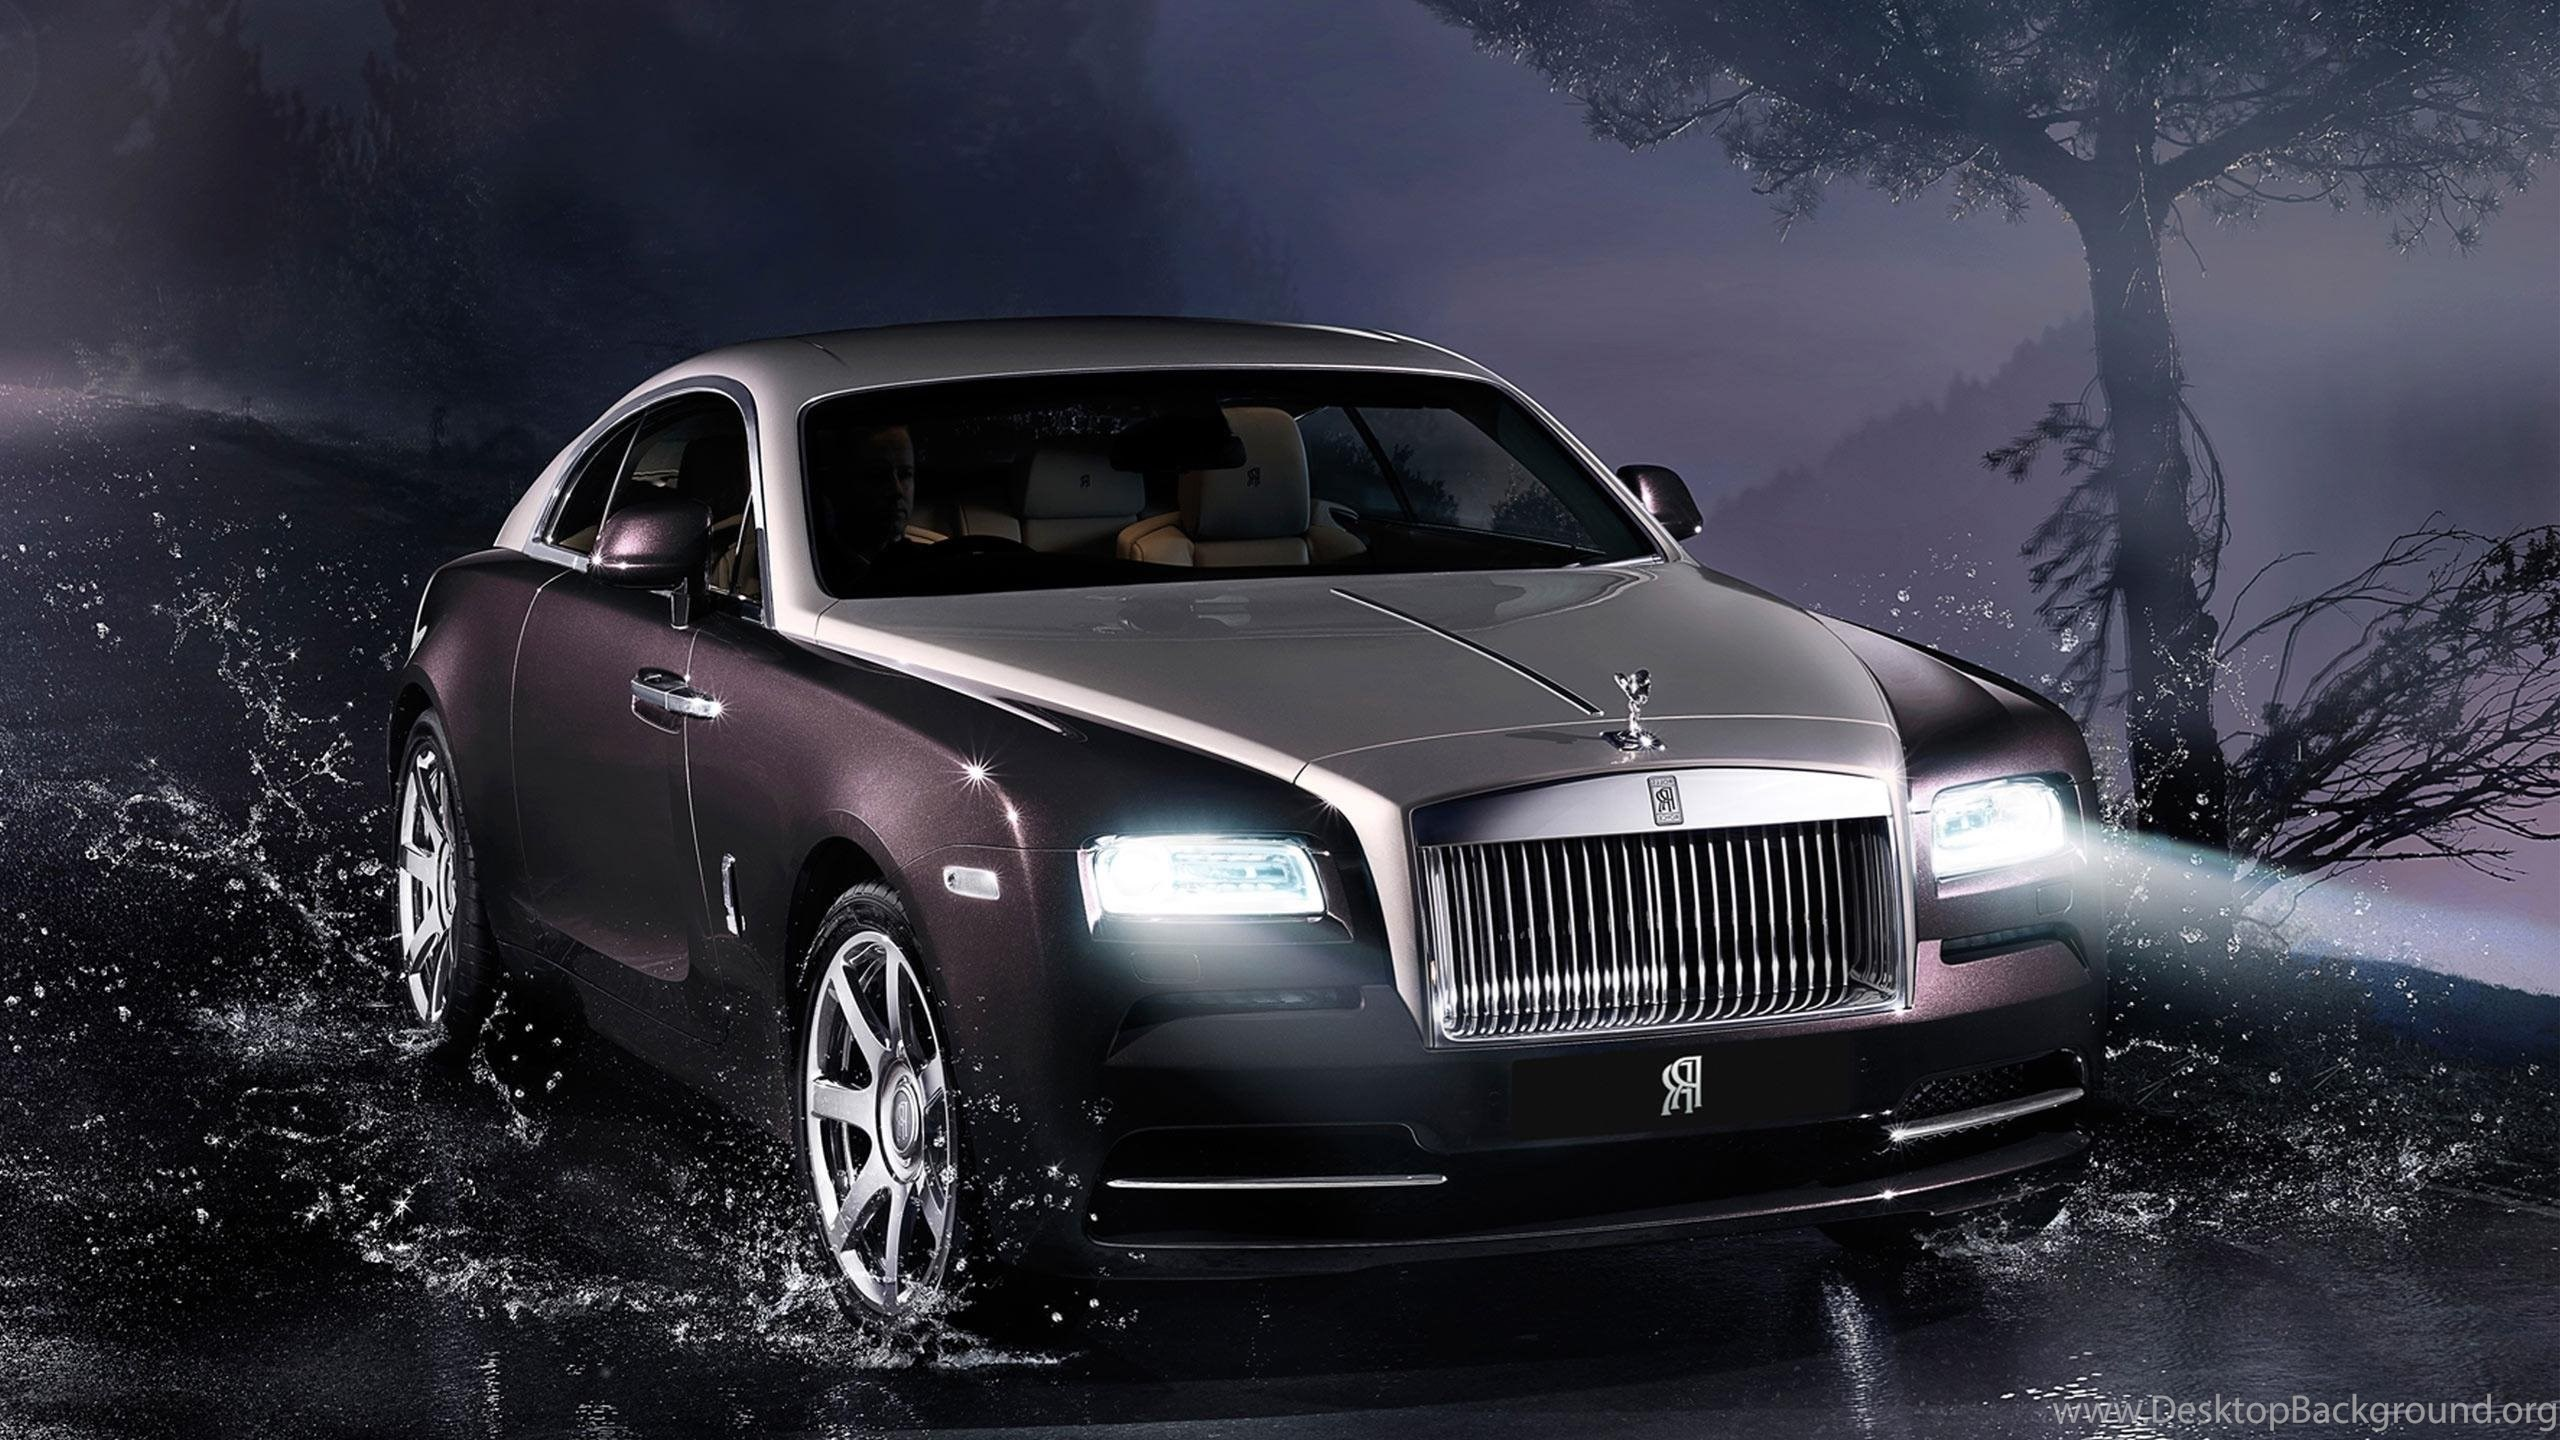 Rolls Royce Wallpapers Backgrounds With Quality Hd Desktop Background